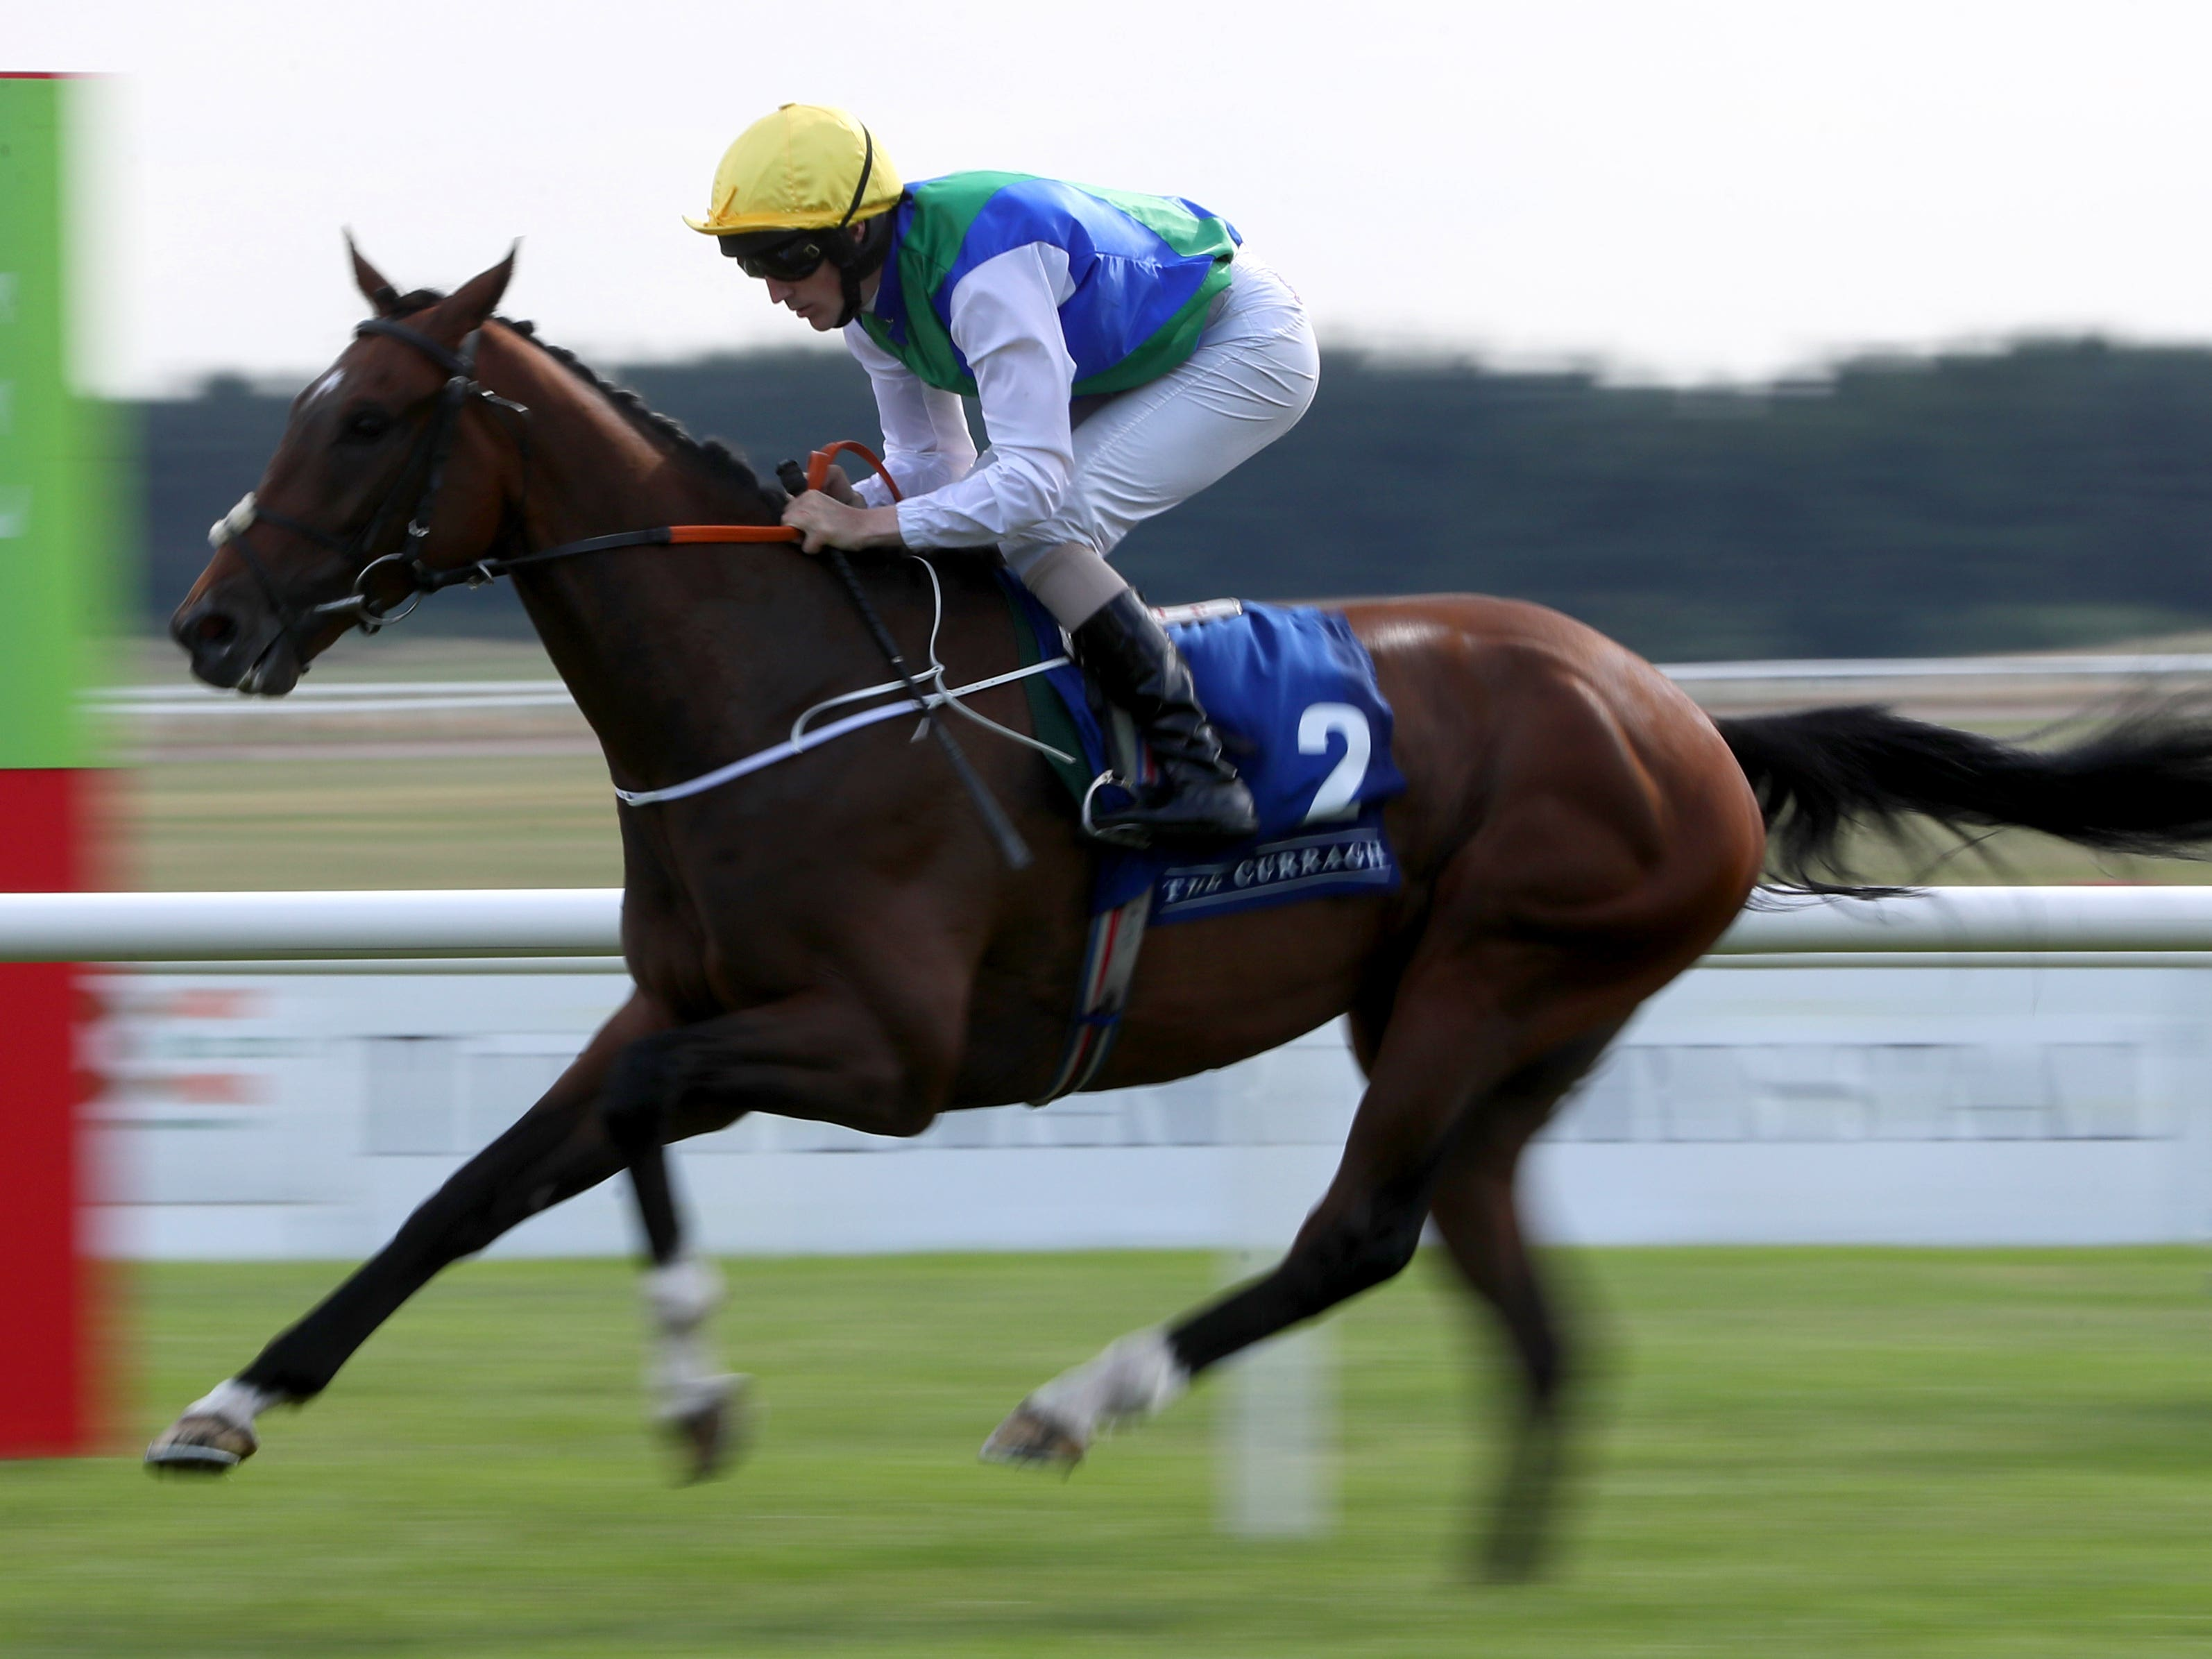 Maths Prize on his way to winning at the Curragh last month (Brian Lawless/PA)